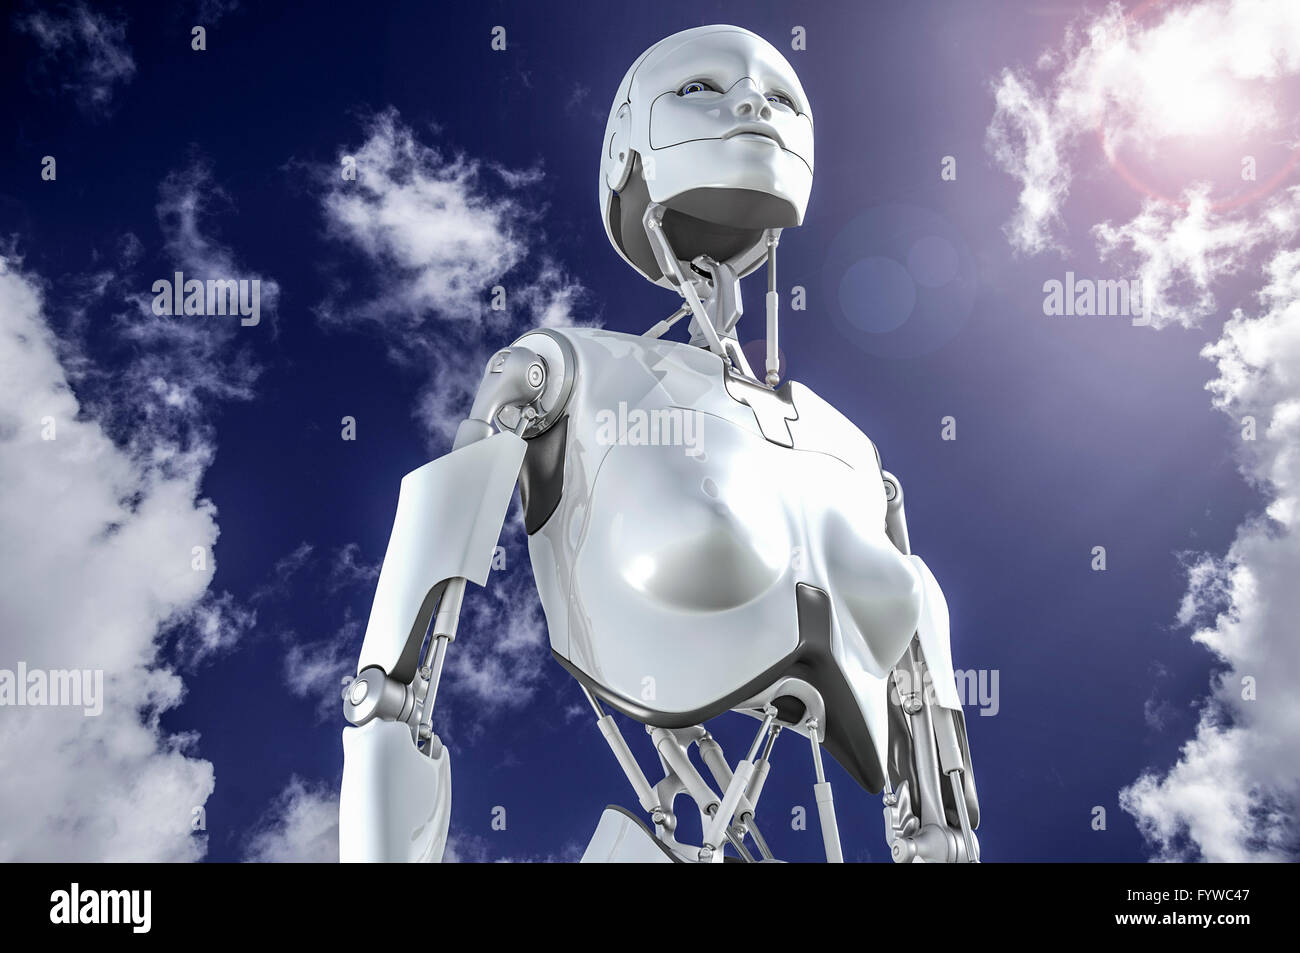 Female Humanoid robot looking up into the sky. - Stock Image